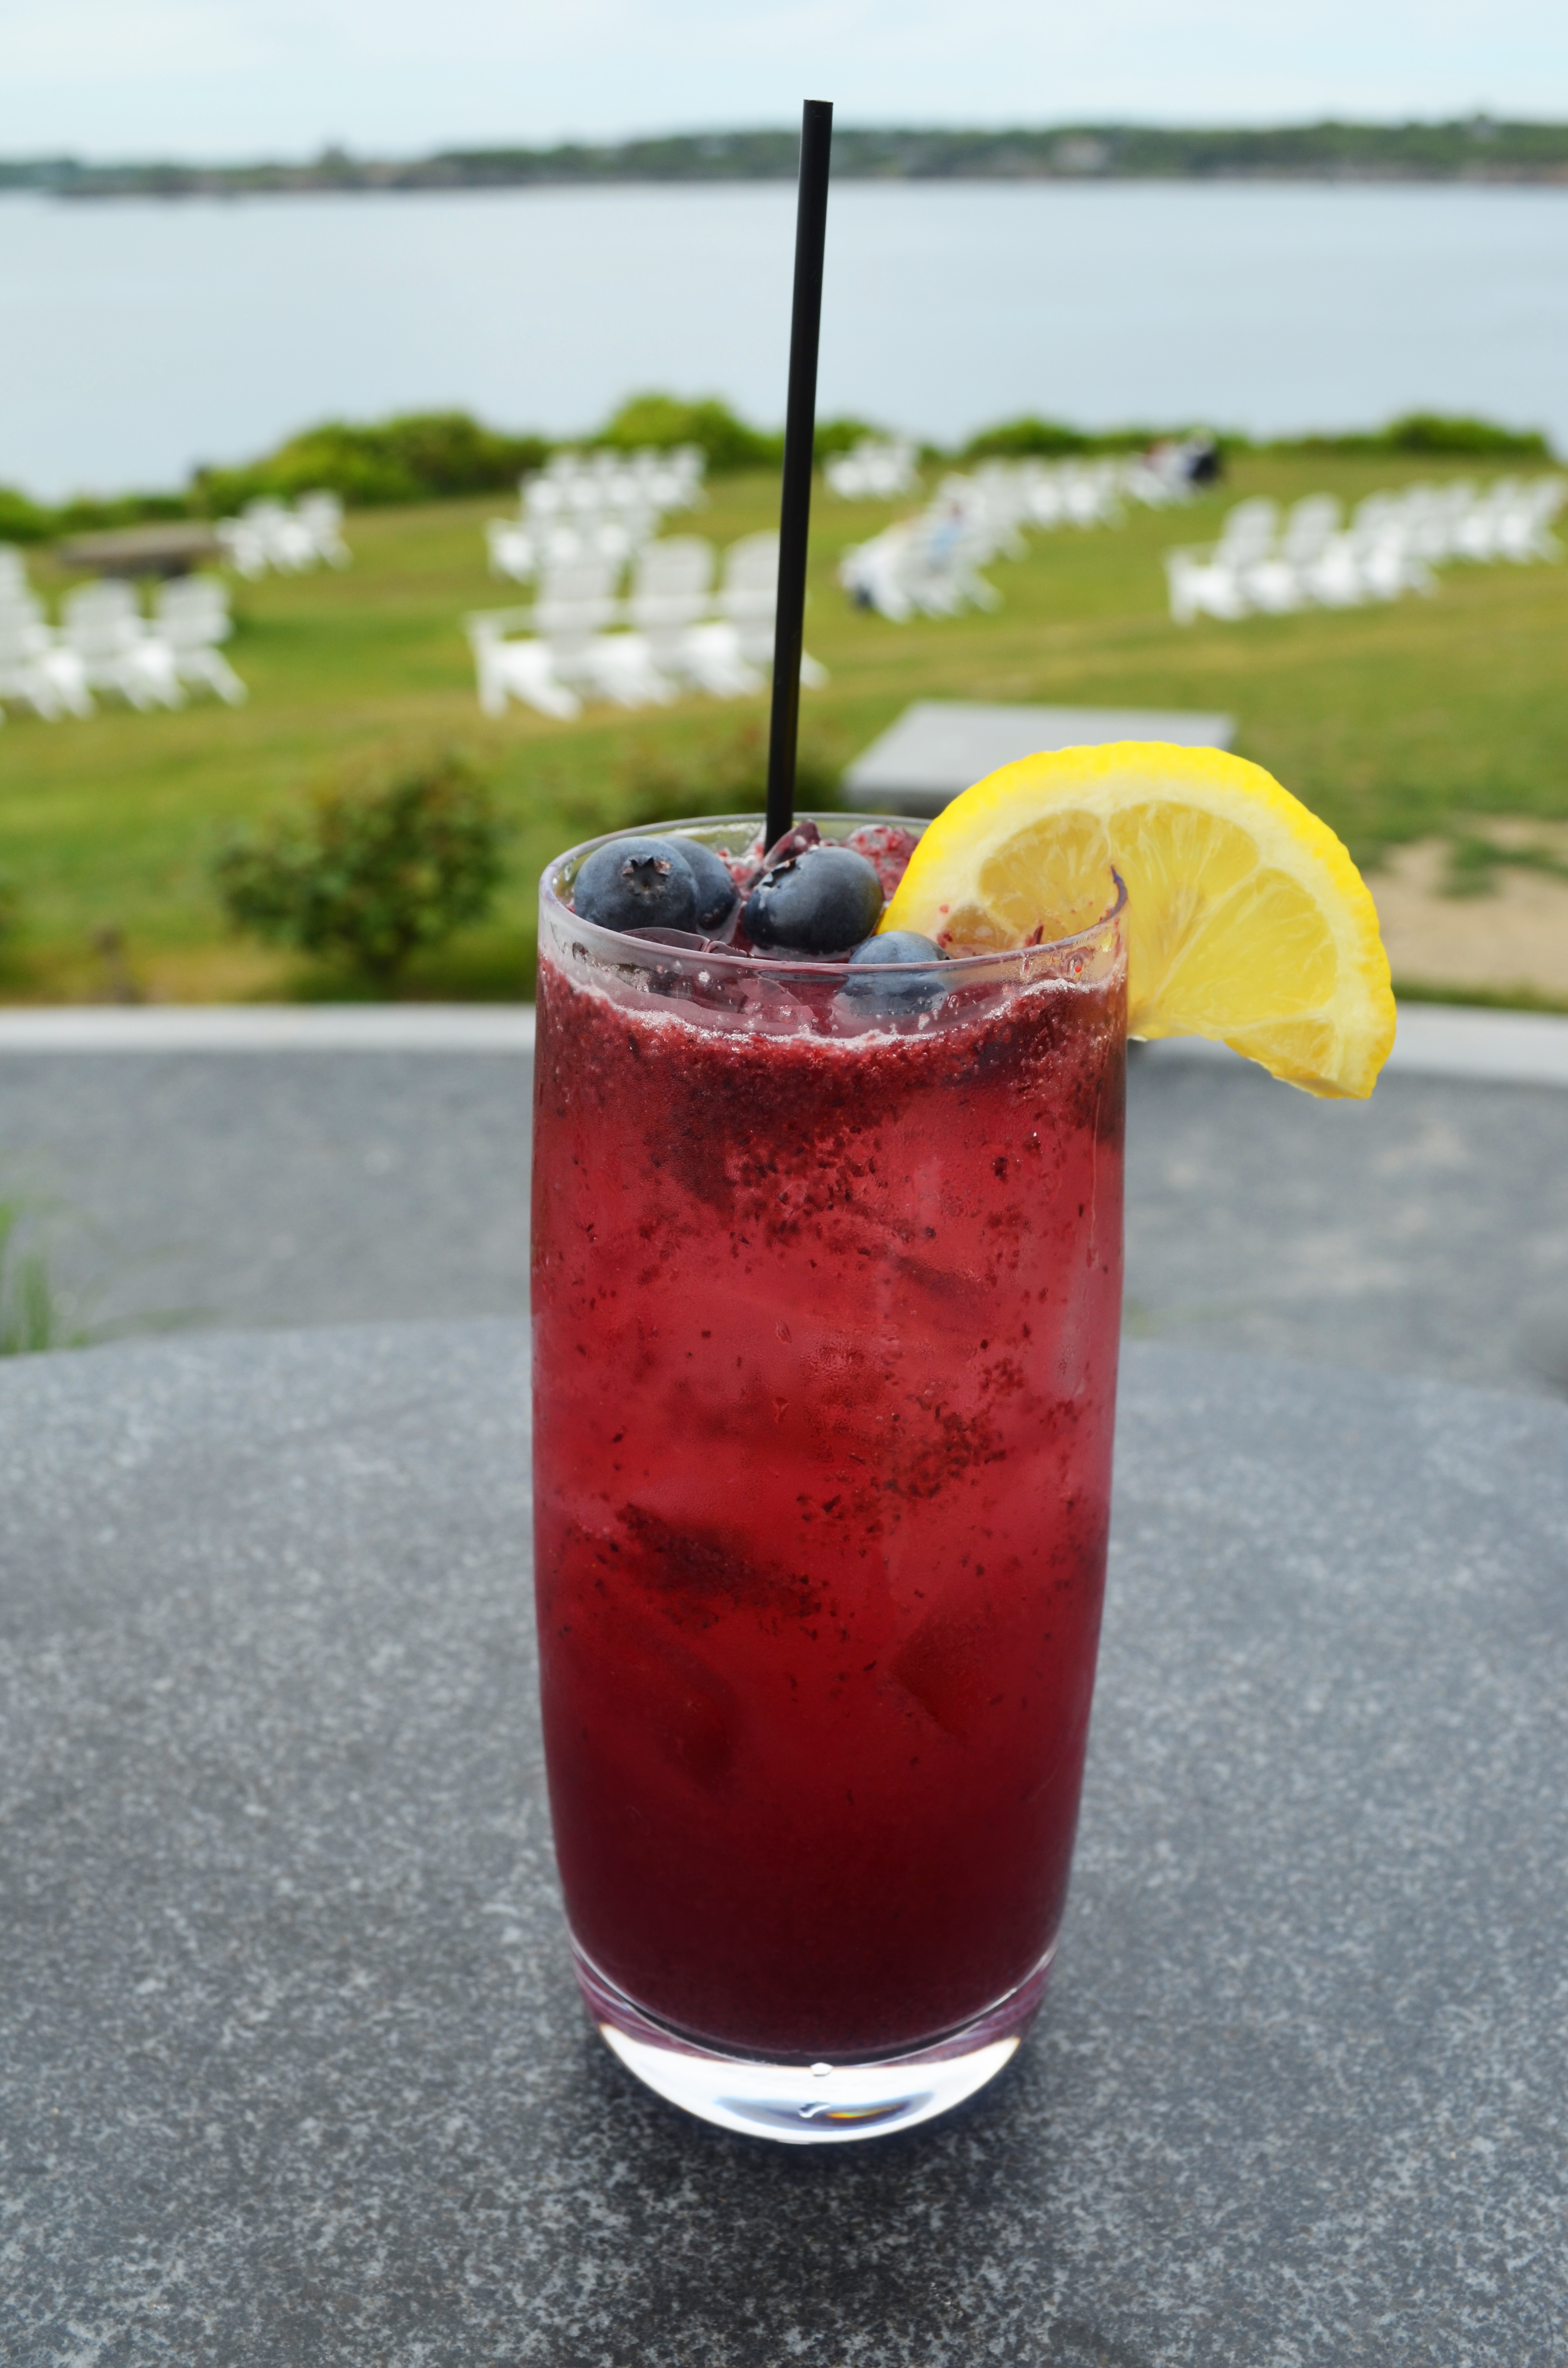 Castle Hill Inn Blueberry Lemonade